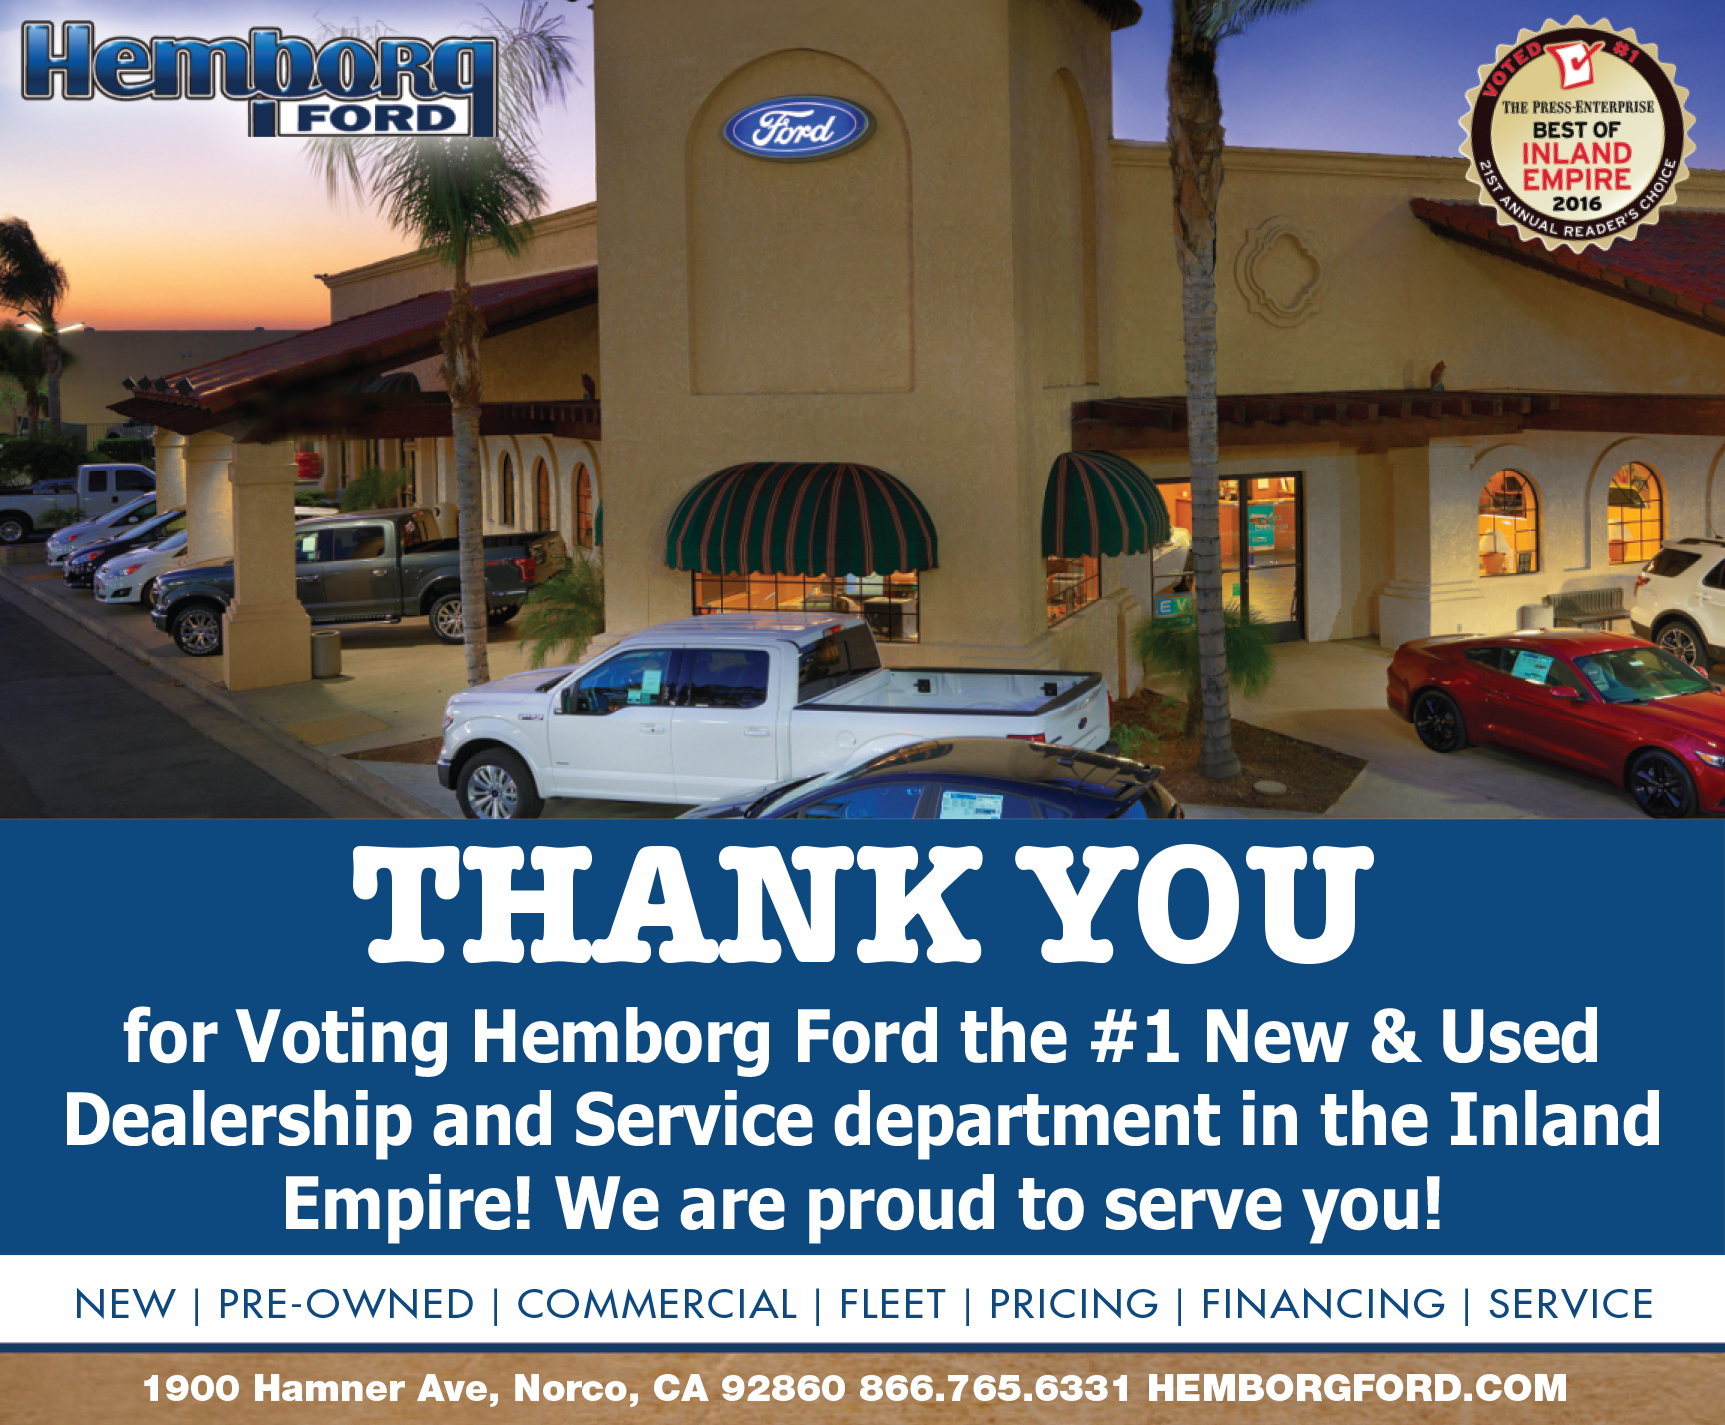 Hemborg Ford Number 1 New And Used Dealership and Service Department in the Inland Empire!